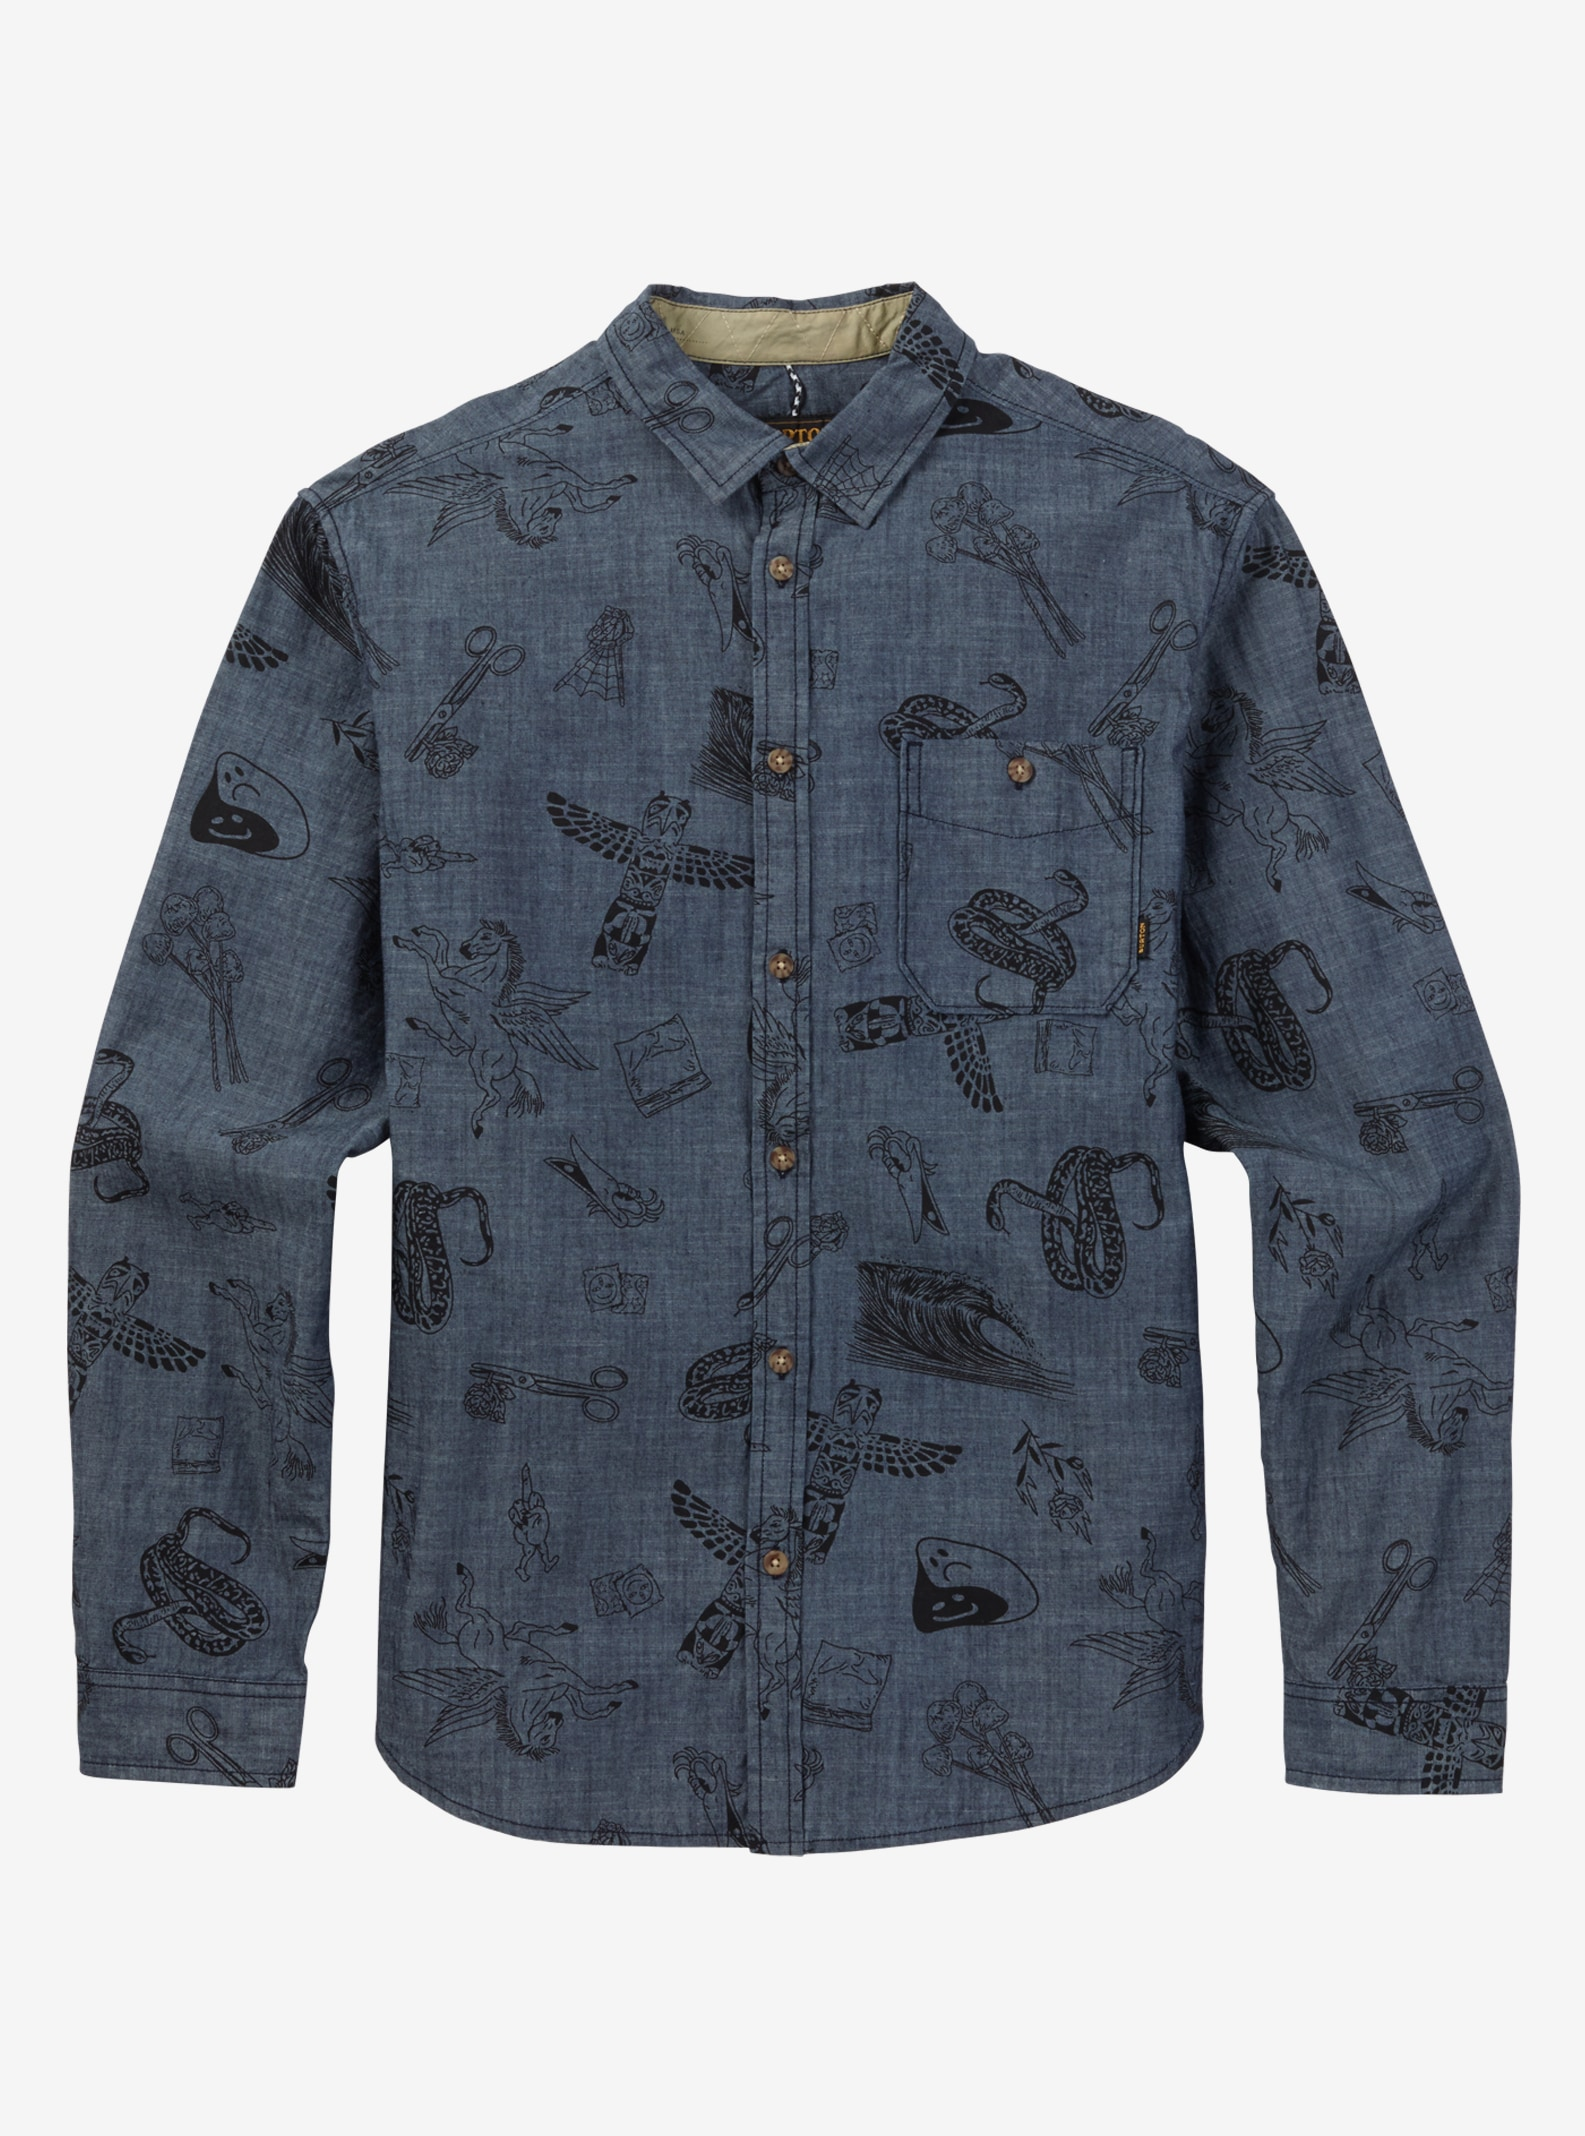 Burton Slayton Long Sleeve Shirt shown in Chambray Freetime